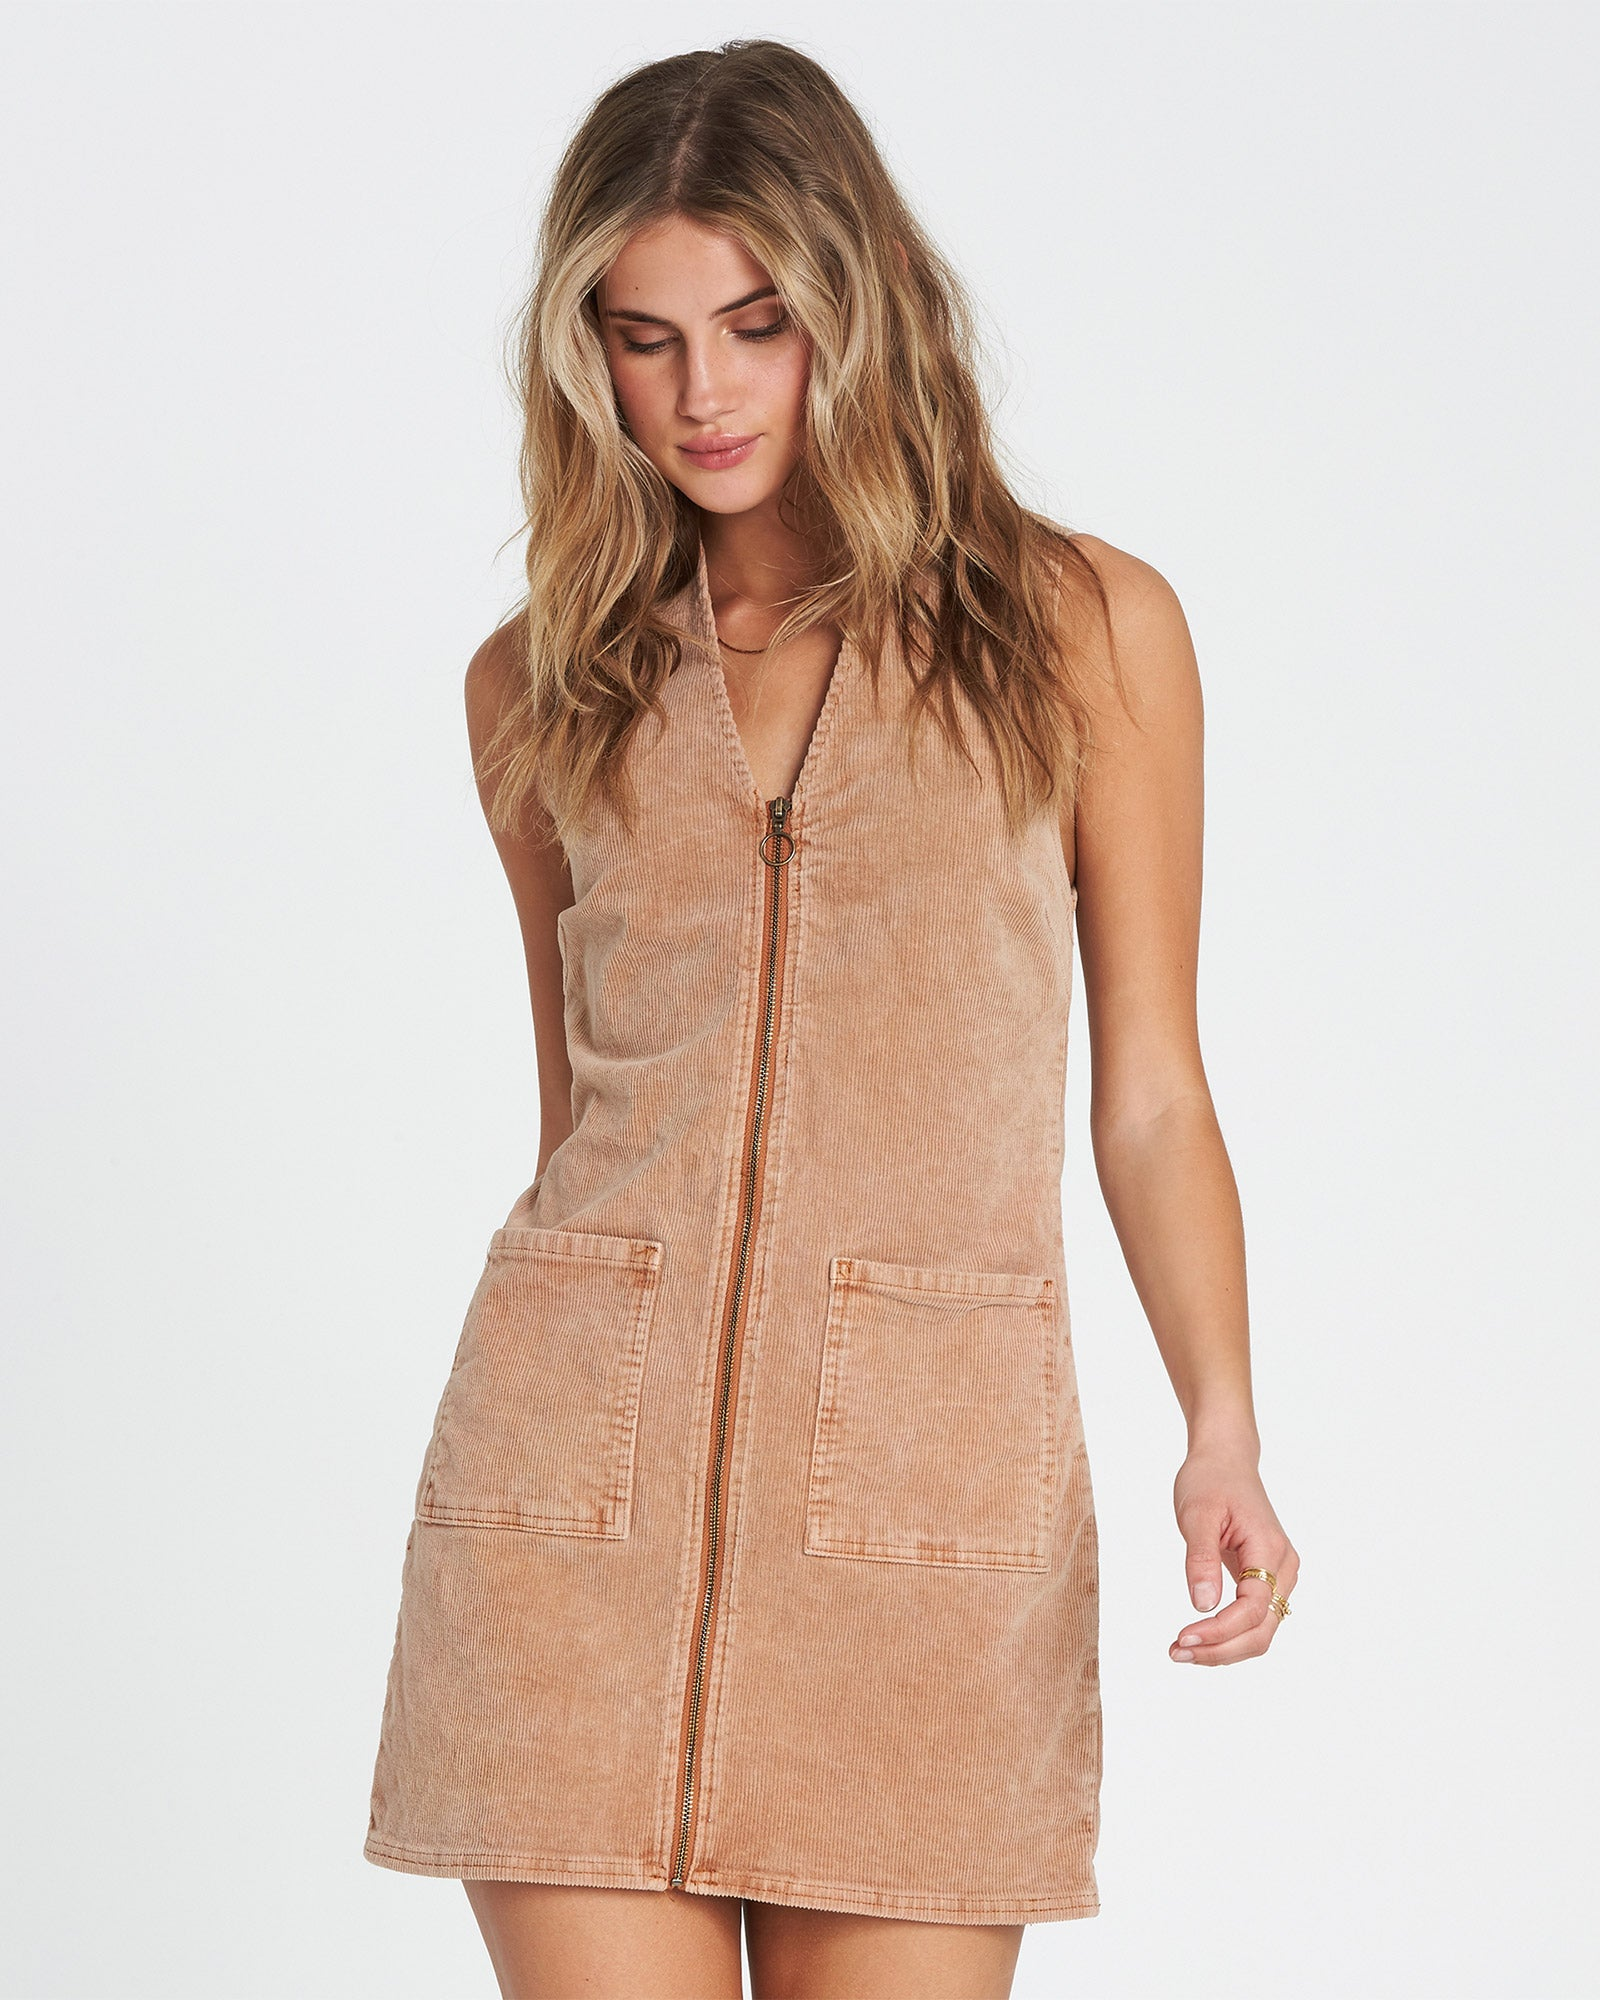 FOXY CORDUROY MINI DRESS By Billabong